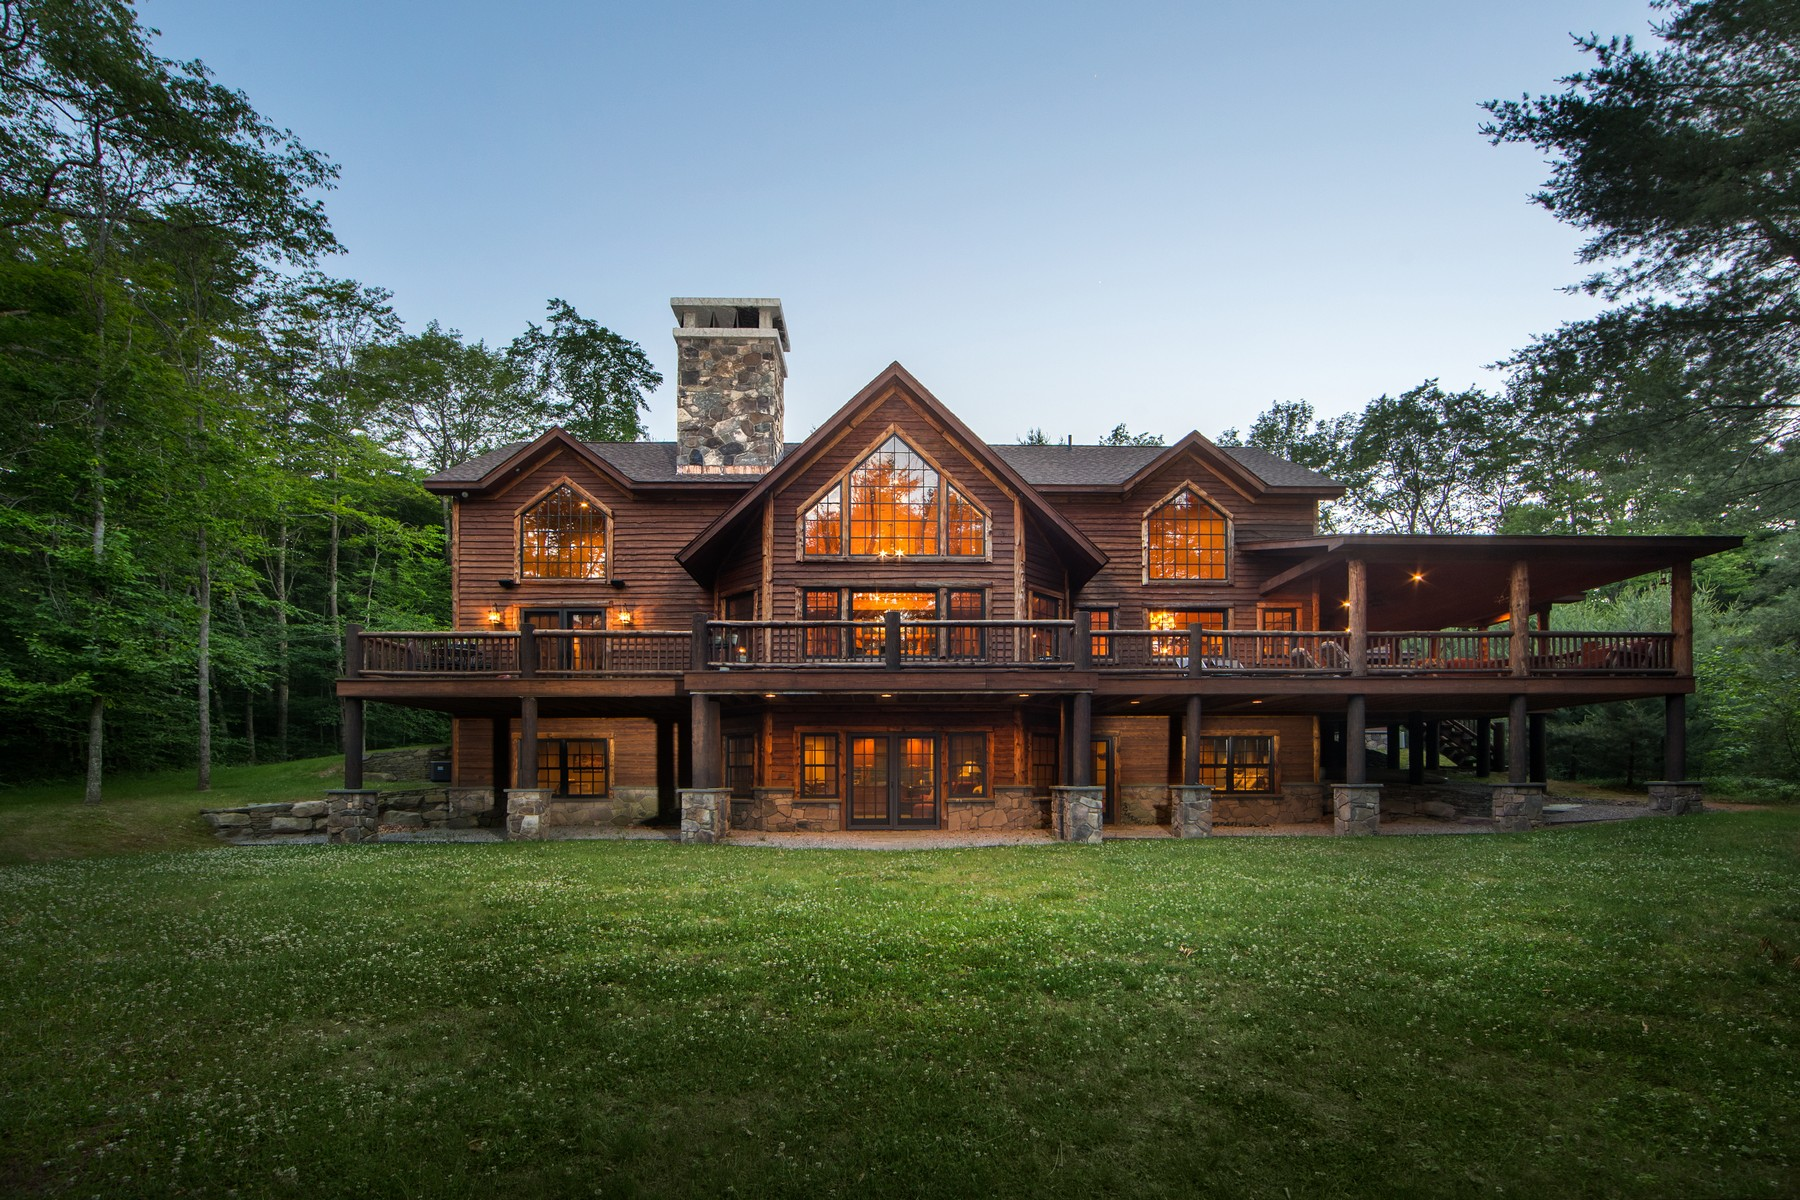 Casa Unifamiliar por un Venta en The Forest Edge Lodge at The Chapin Estate 427 Woodstone Trail Bethel, Nueva York 12720 Estados Unidos